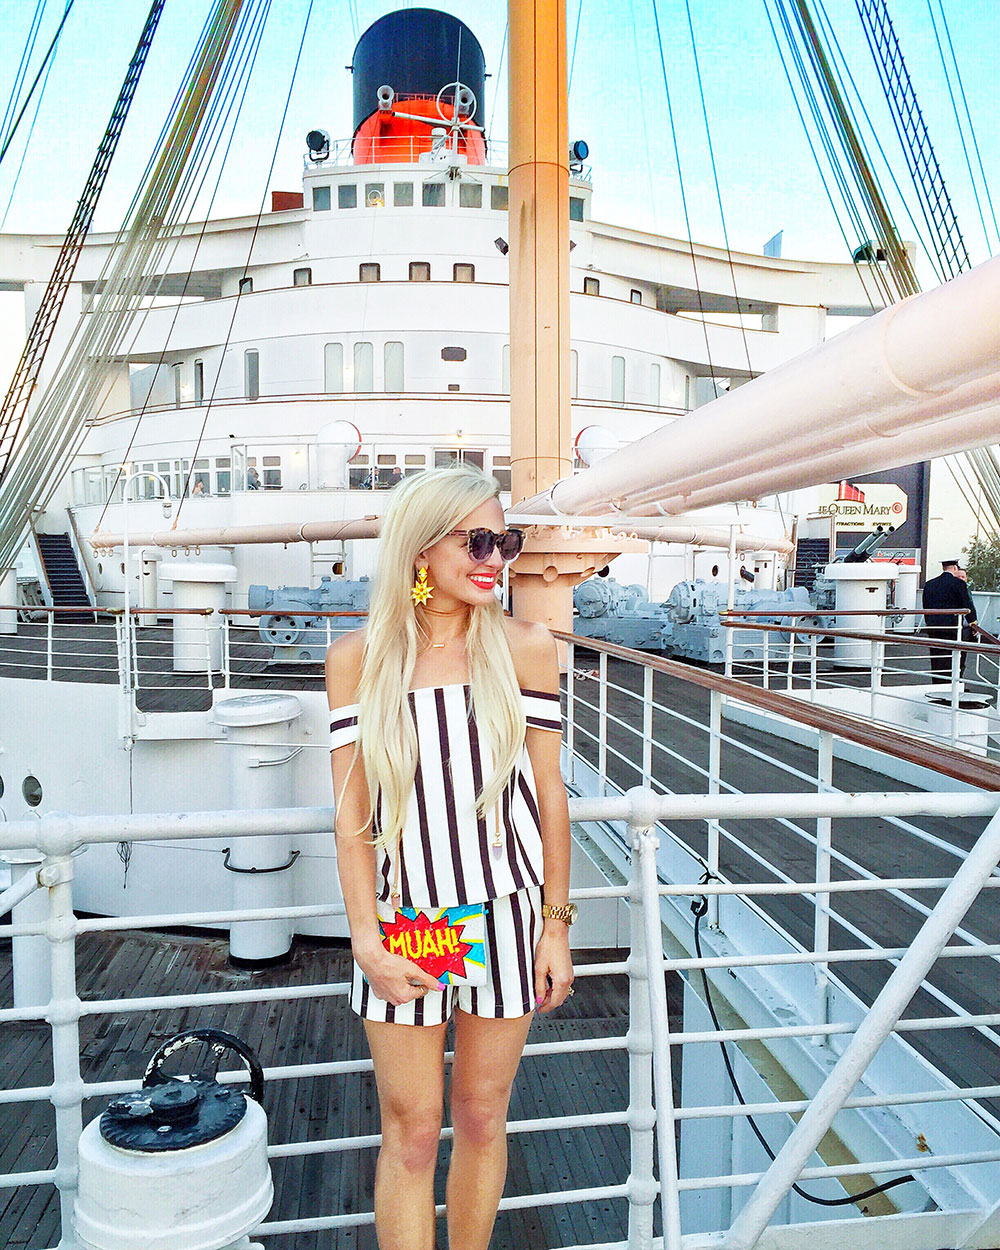 vandi-fair-dallas-fashion-blog-lauren-vandiver-southern-texas-travel-blogger-queen-mary-ship-visit-long-beach-topshop-nordstrom-striped-romper